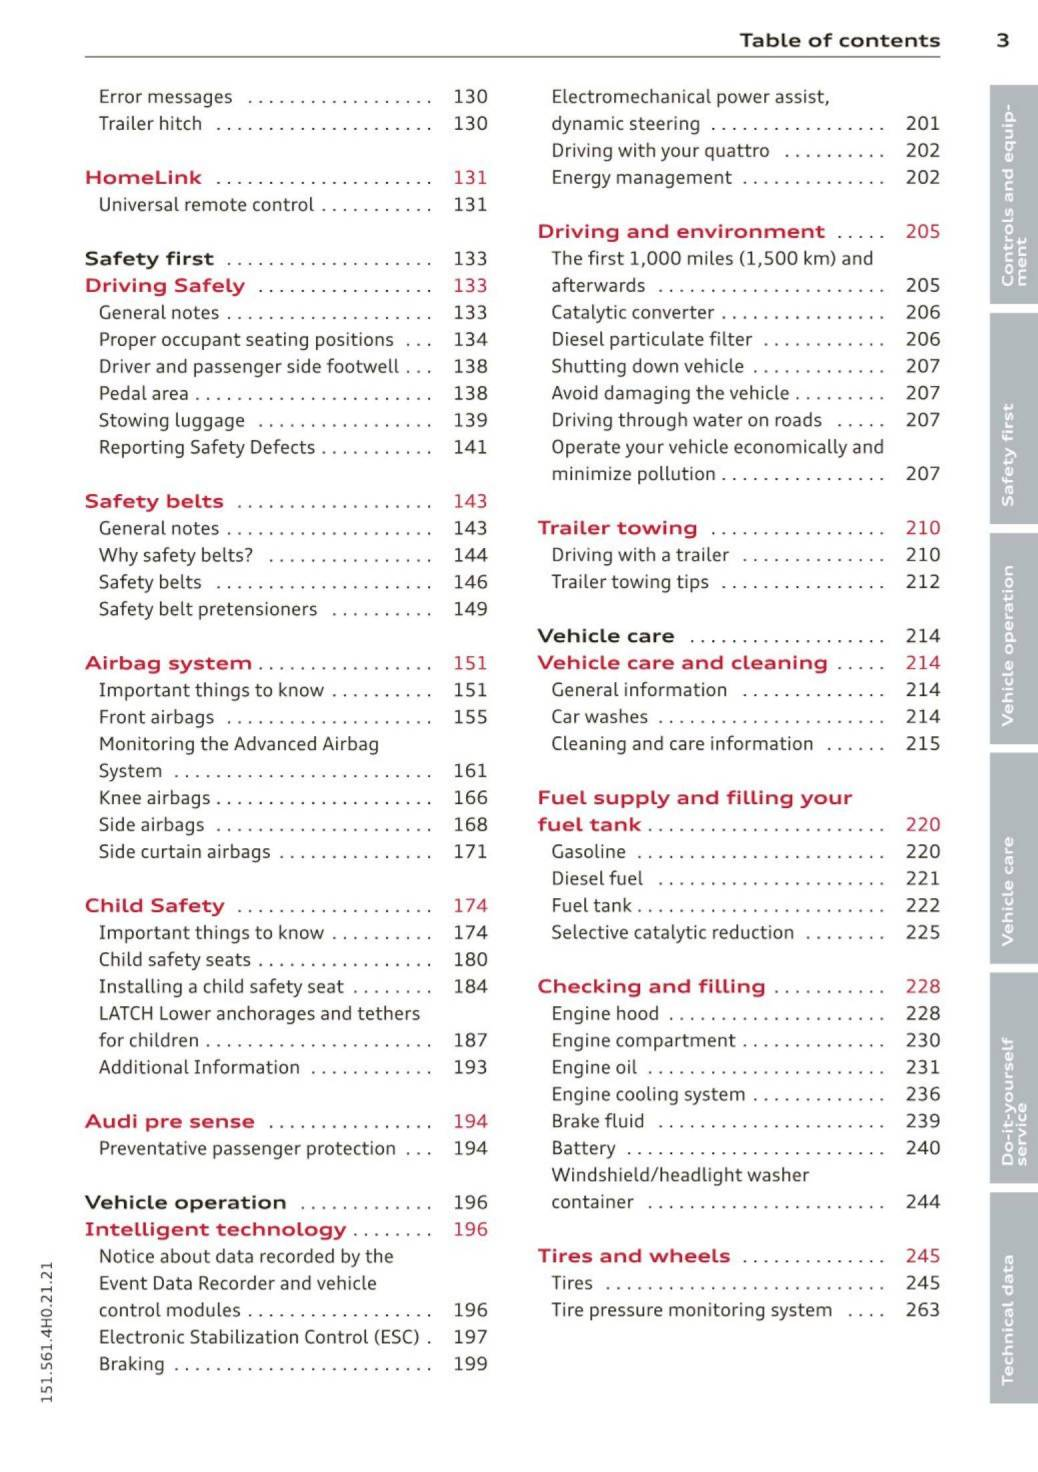 2015 Audi A8 S8 Owners Manual Page 5 Pdf